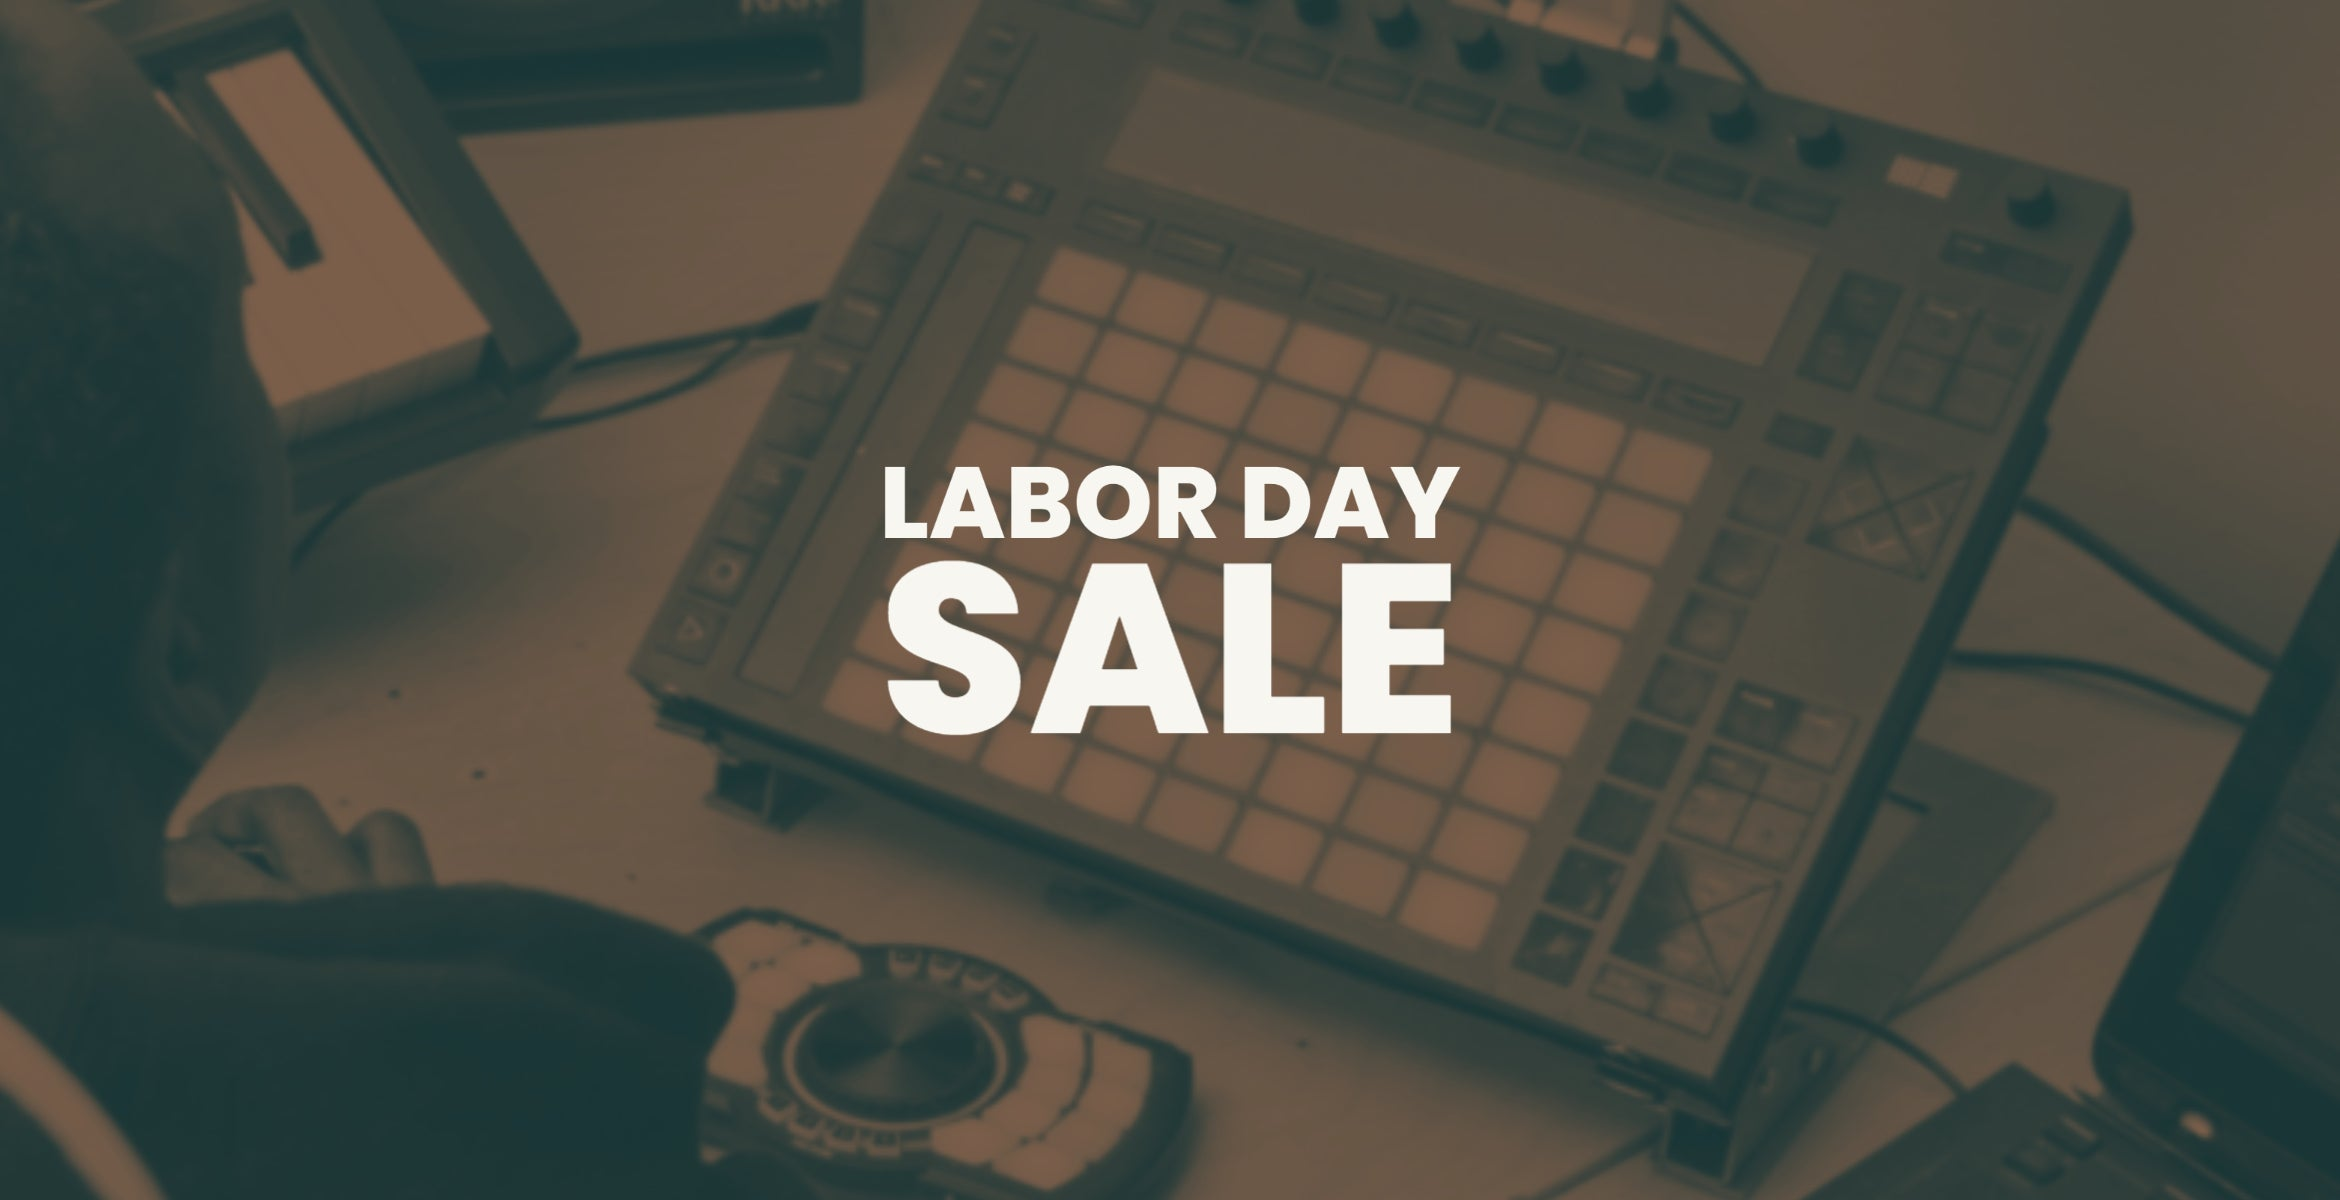 Get Notified When Our Labor Day Event Starts